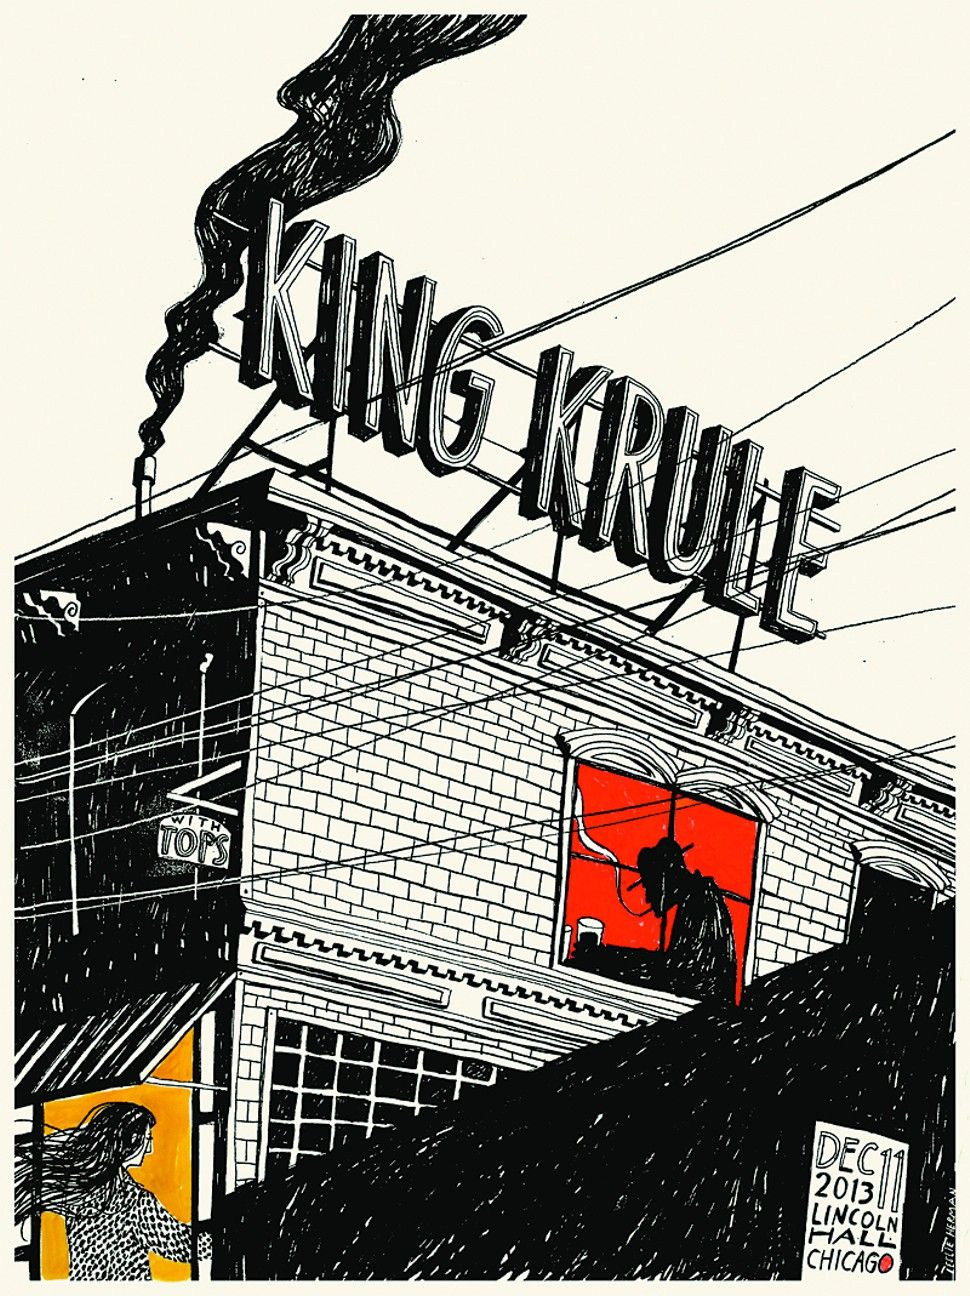 Arte Concert King Krule Gig Poster Of The Week King Krule On The Rooftops All The